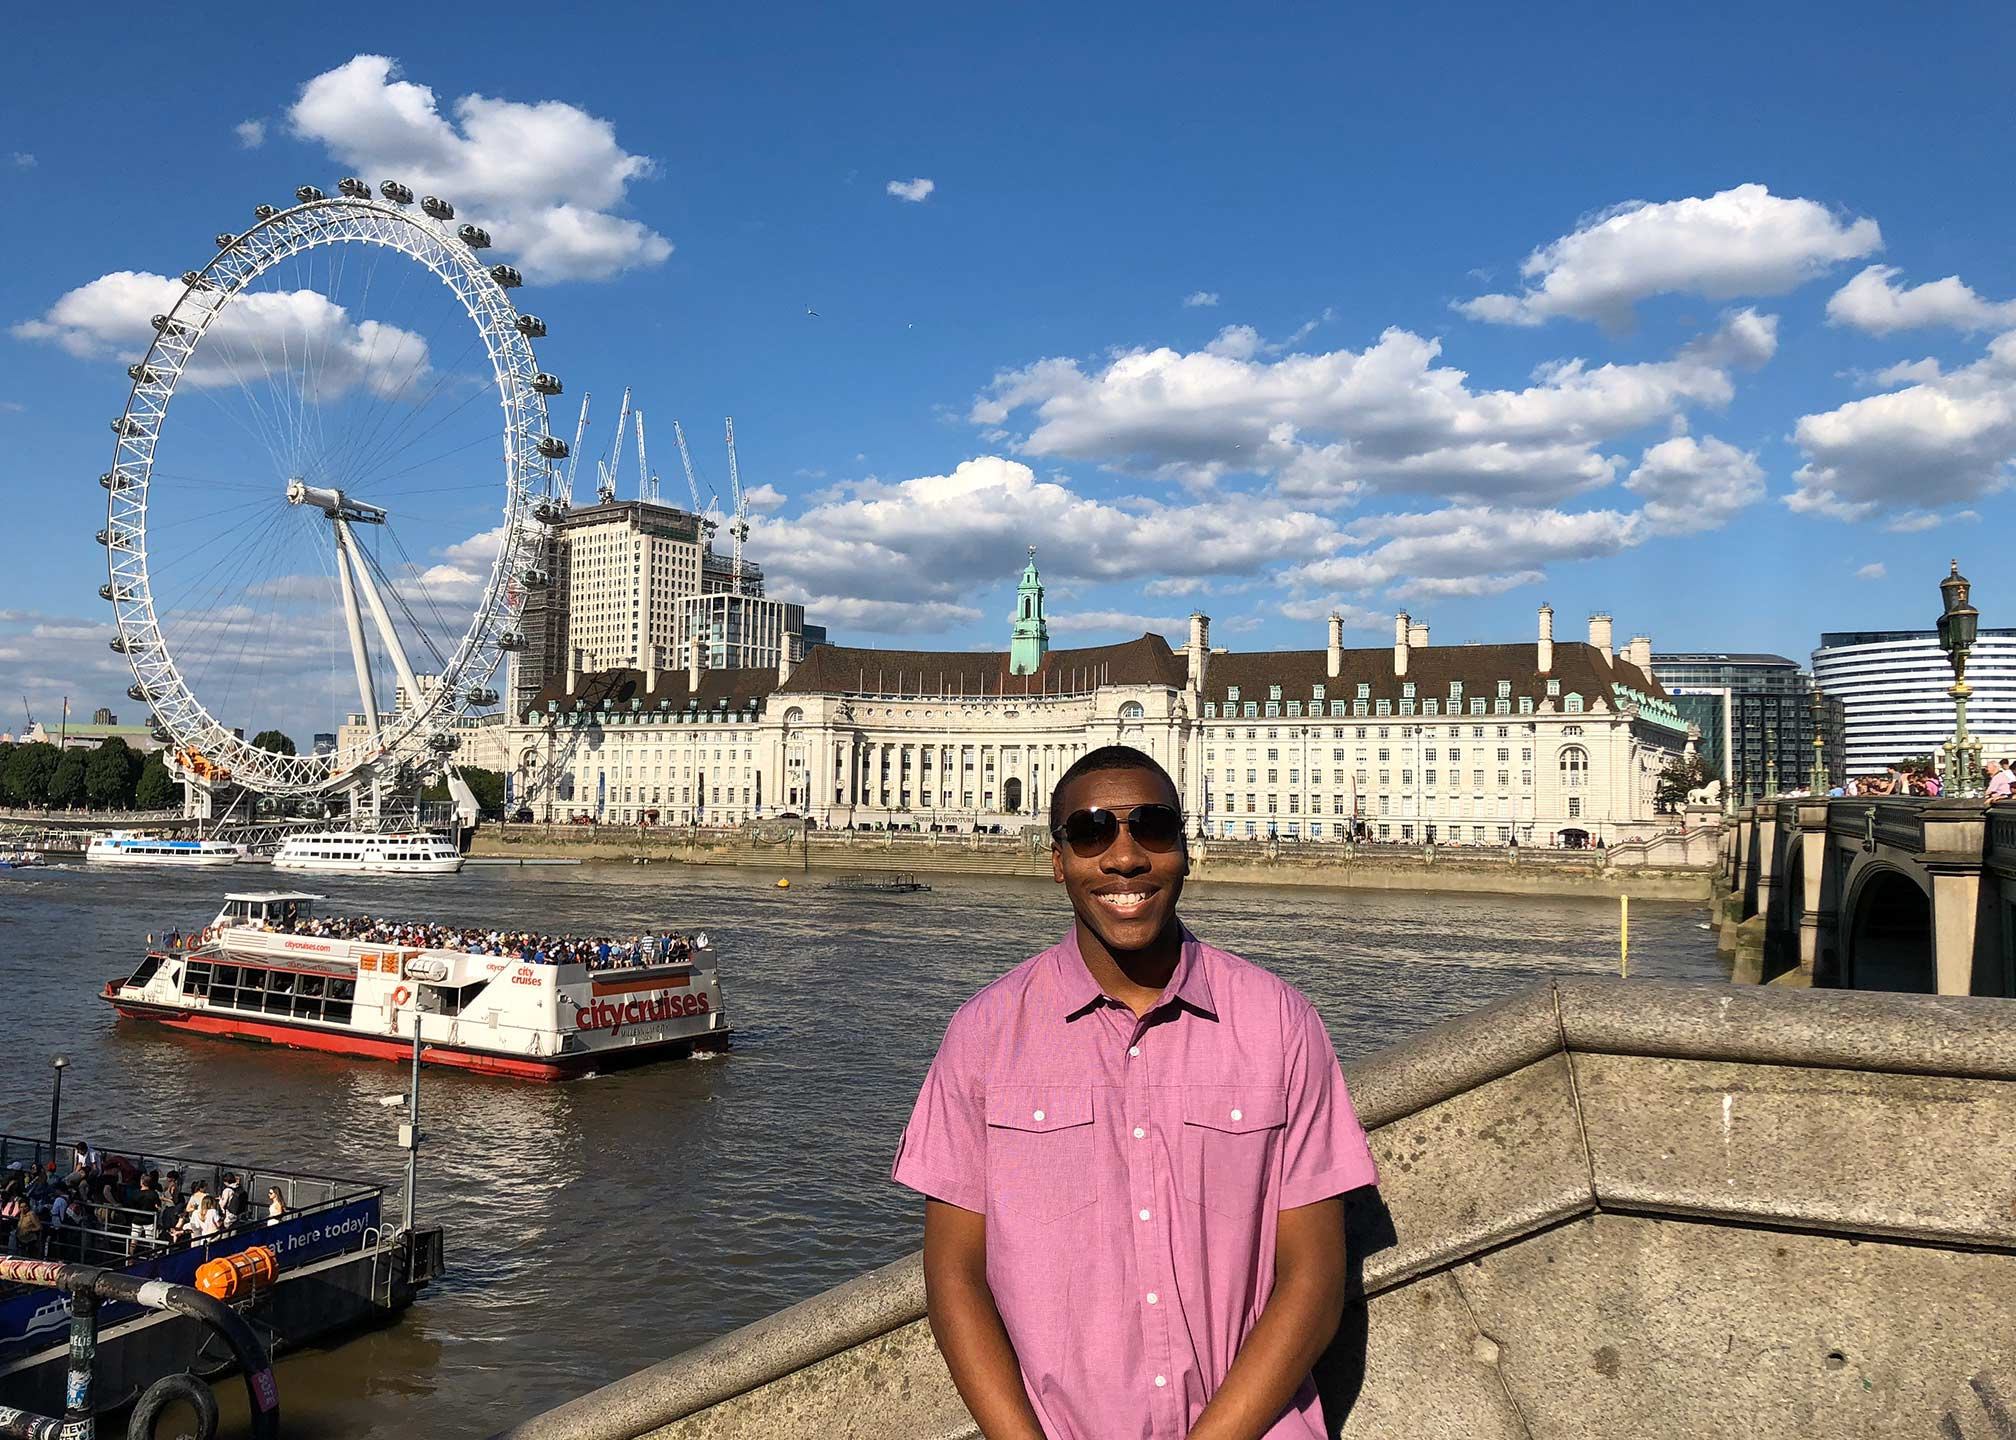 Michael enjoying his time in London in front of the London Eye.